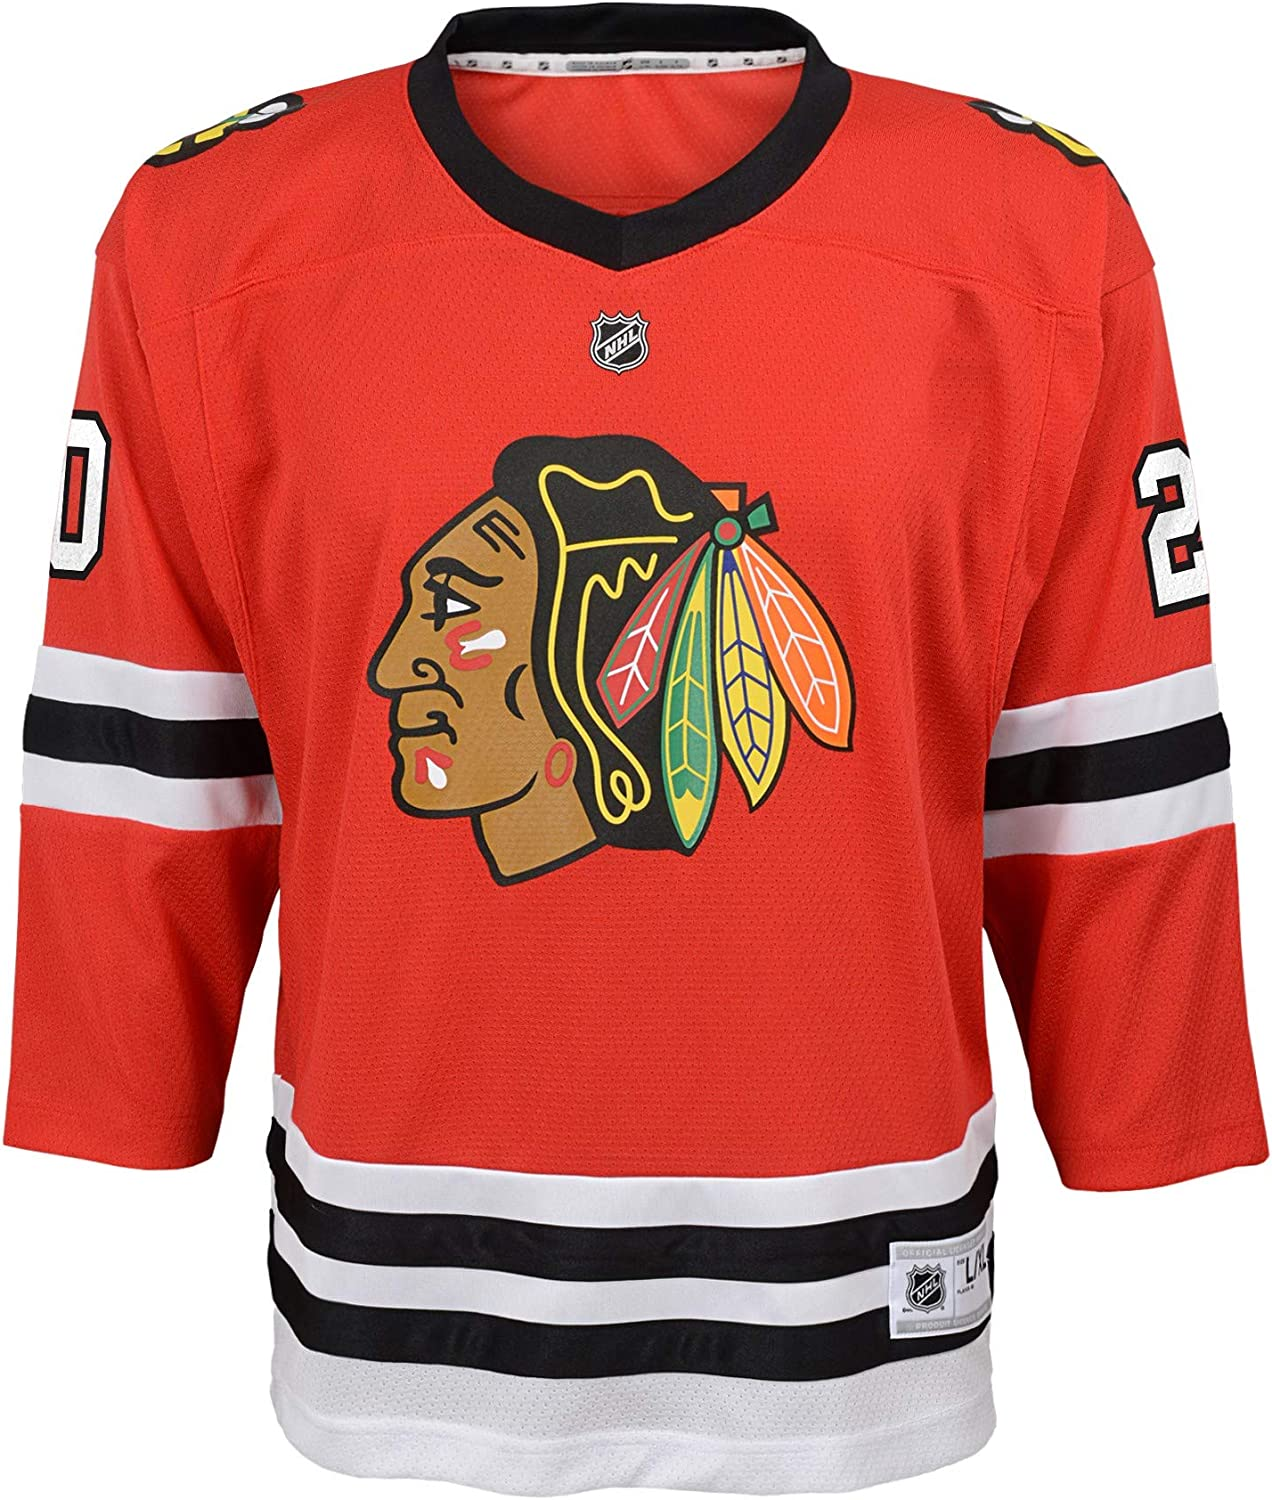 OuterStuff Chicago Blackhawks Brandon Saad #20 Youth NHL Premier Red Home Jersey